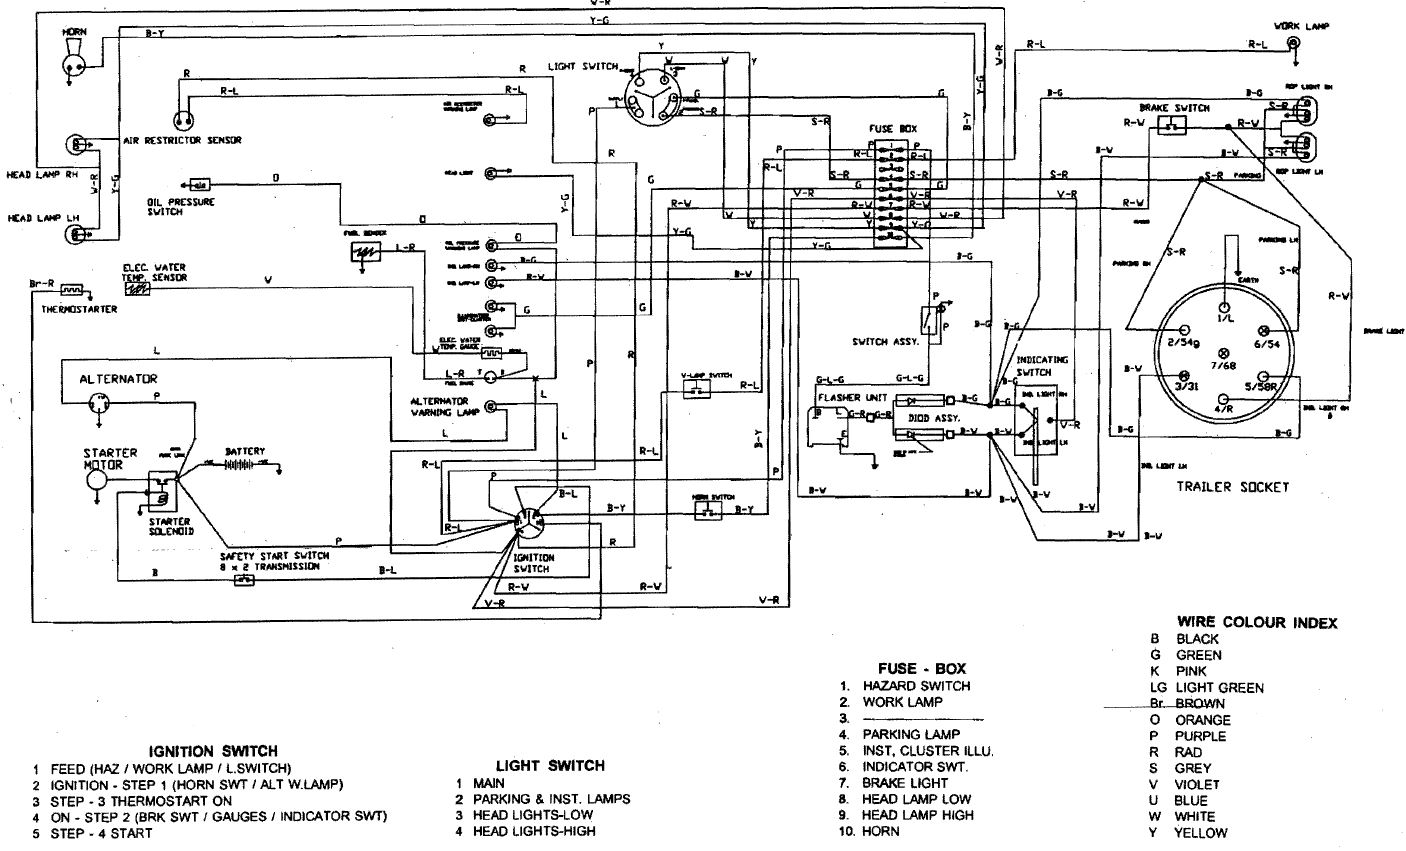 hight resolution of mf 175 wiring diagram wiring diagram operations mf 175 diesel wiring diagram mf 175 wiring diagram